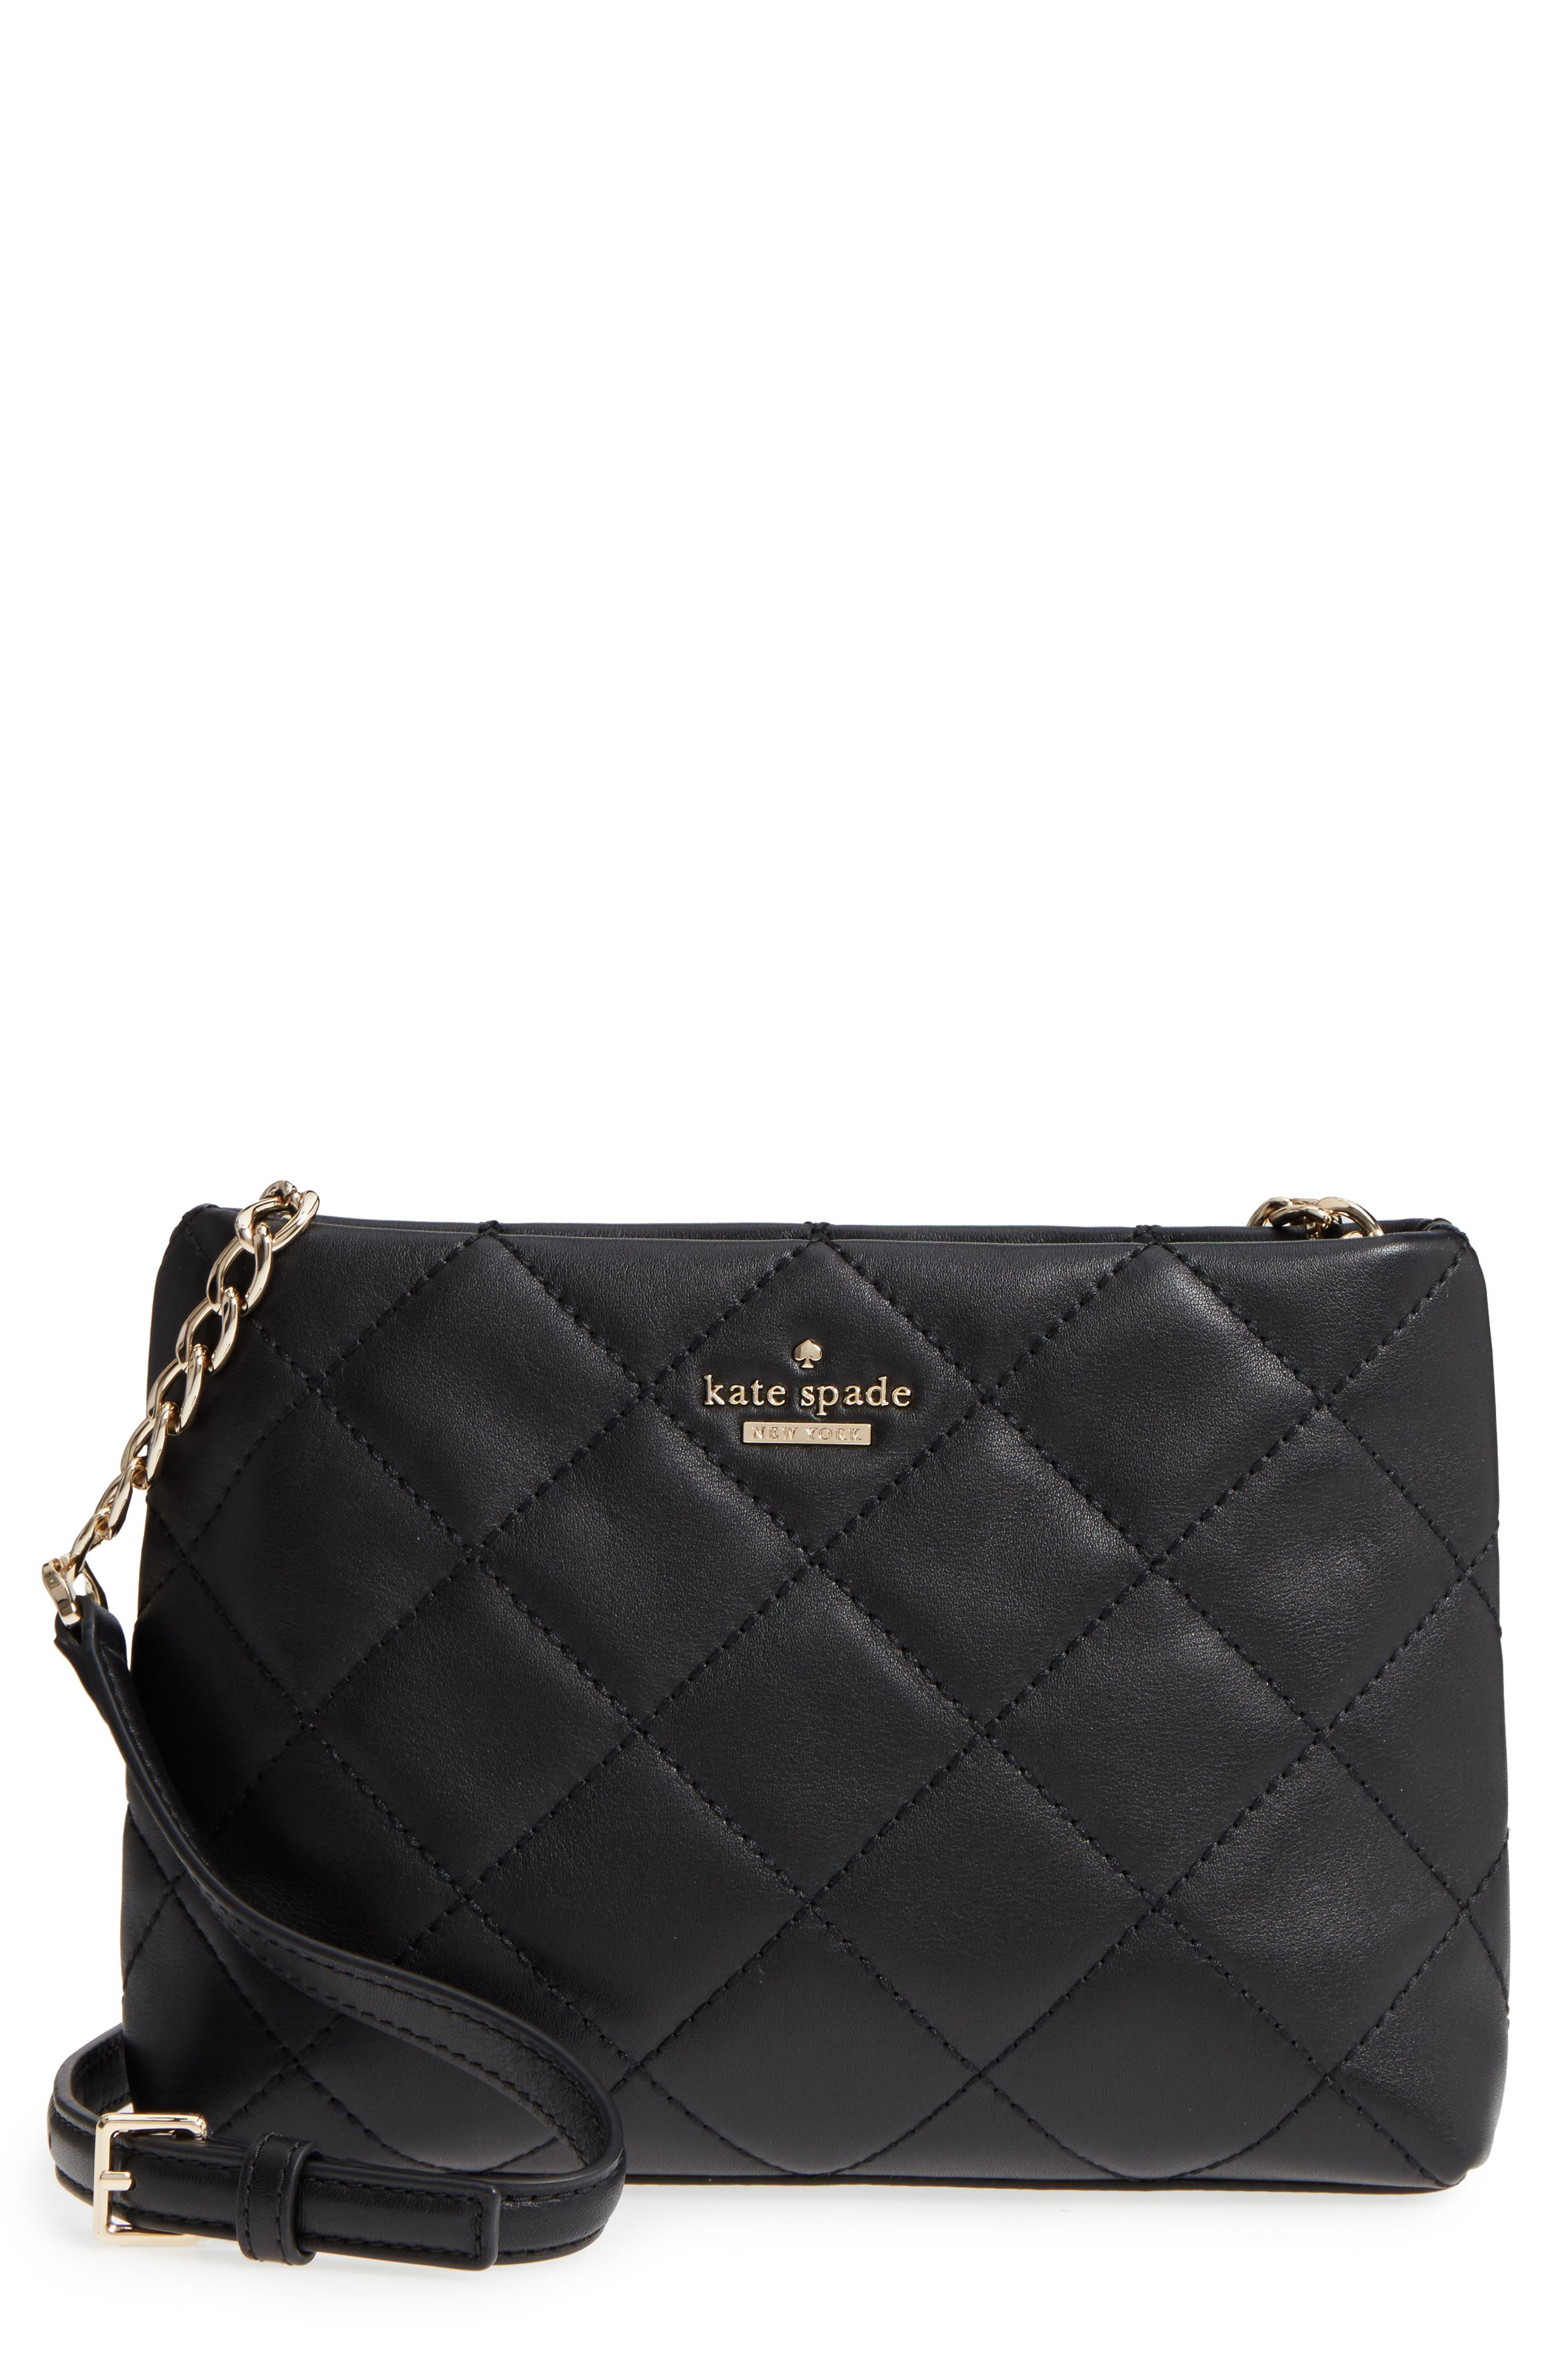 KATE SPADE NEW YORK emerson place caterina leather crossbody bag, Main, color, 001